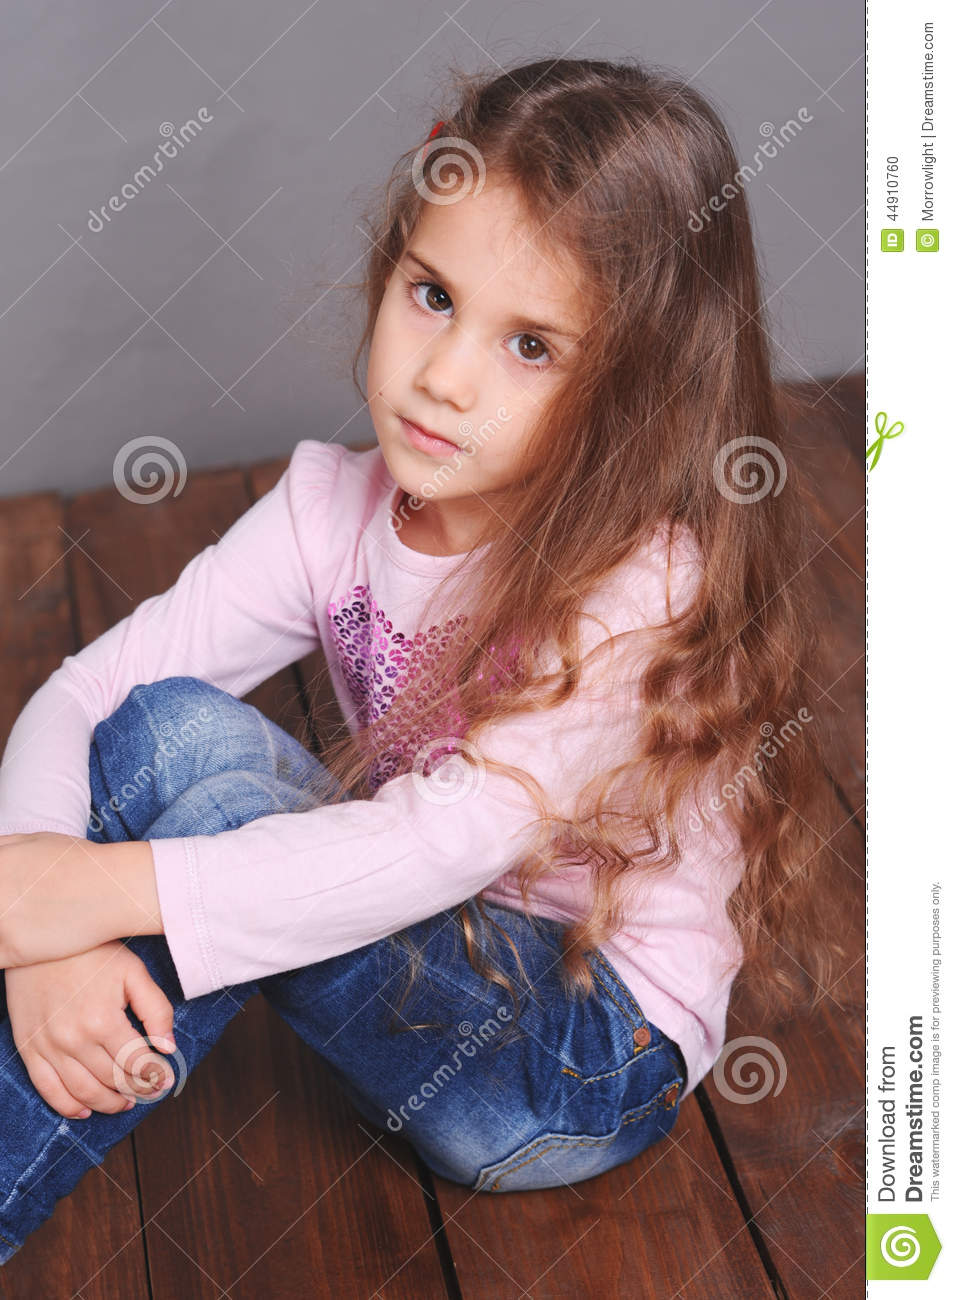 Cute Smiling Little Girl Sitting On Floor Stock Photo